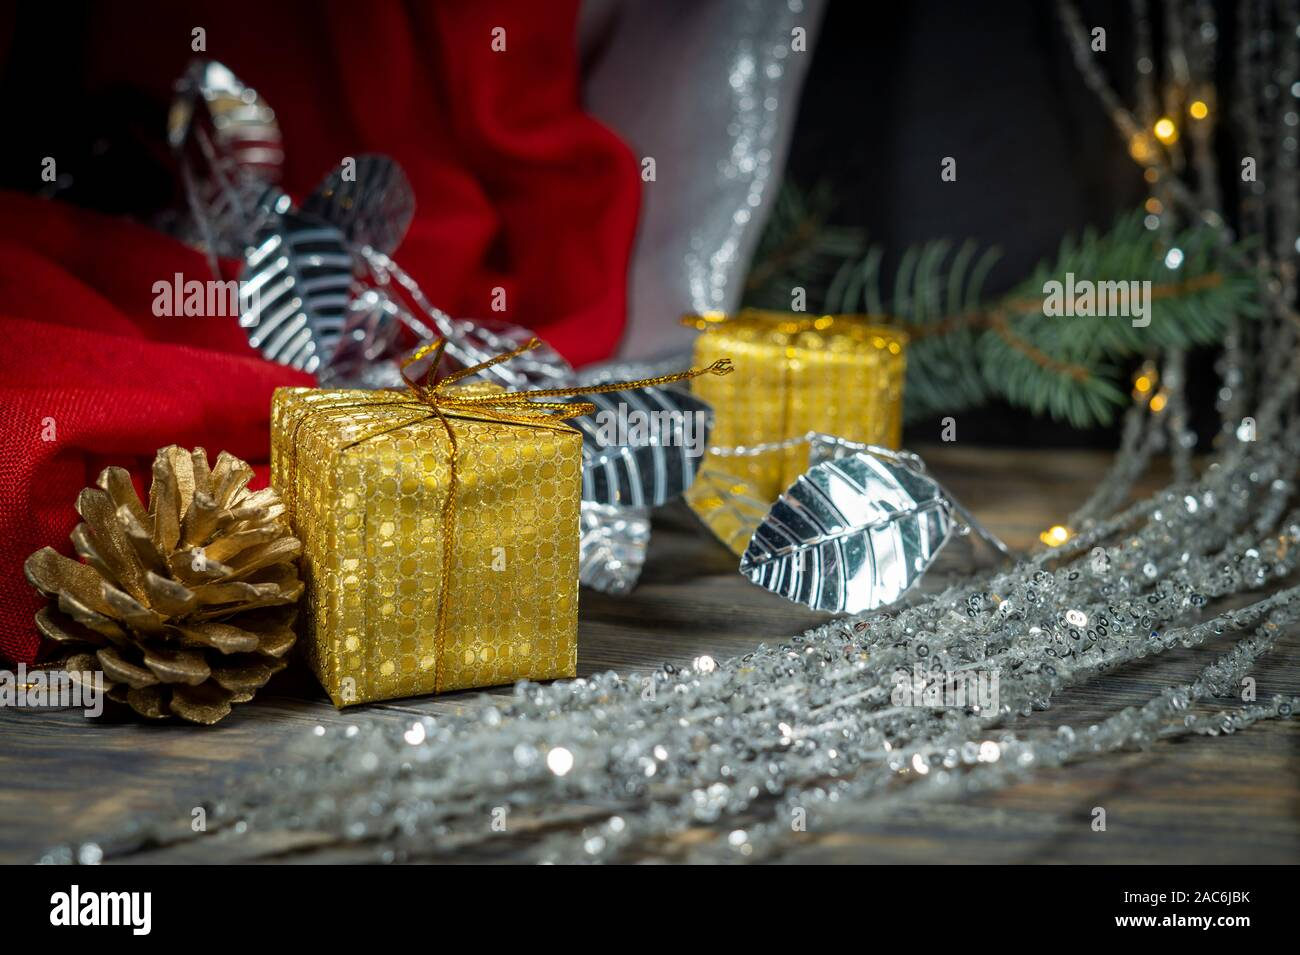 festive christmas background with golden t and cone with a pine branch colorful red drape and assorted decorations 2AC6JBK